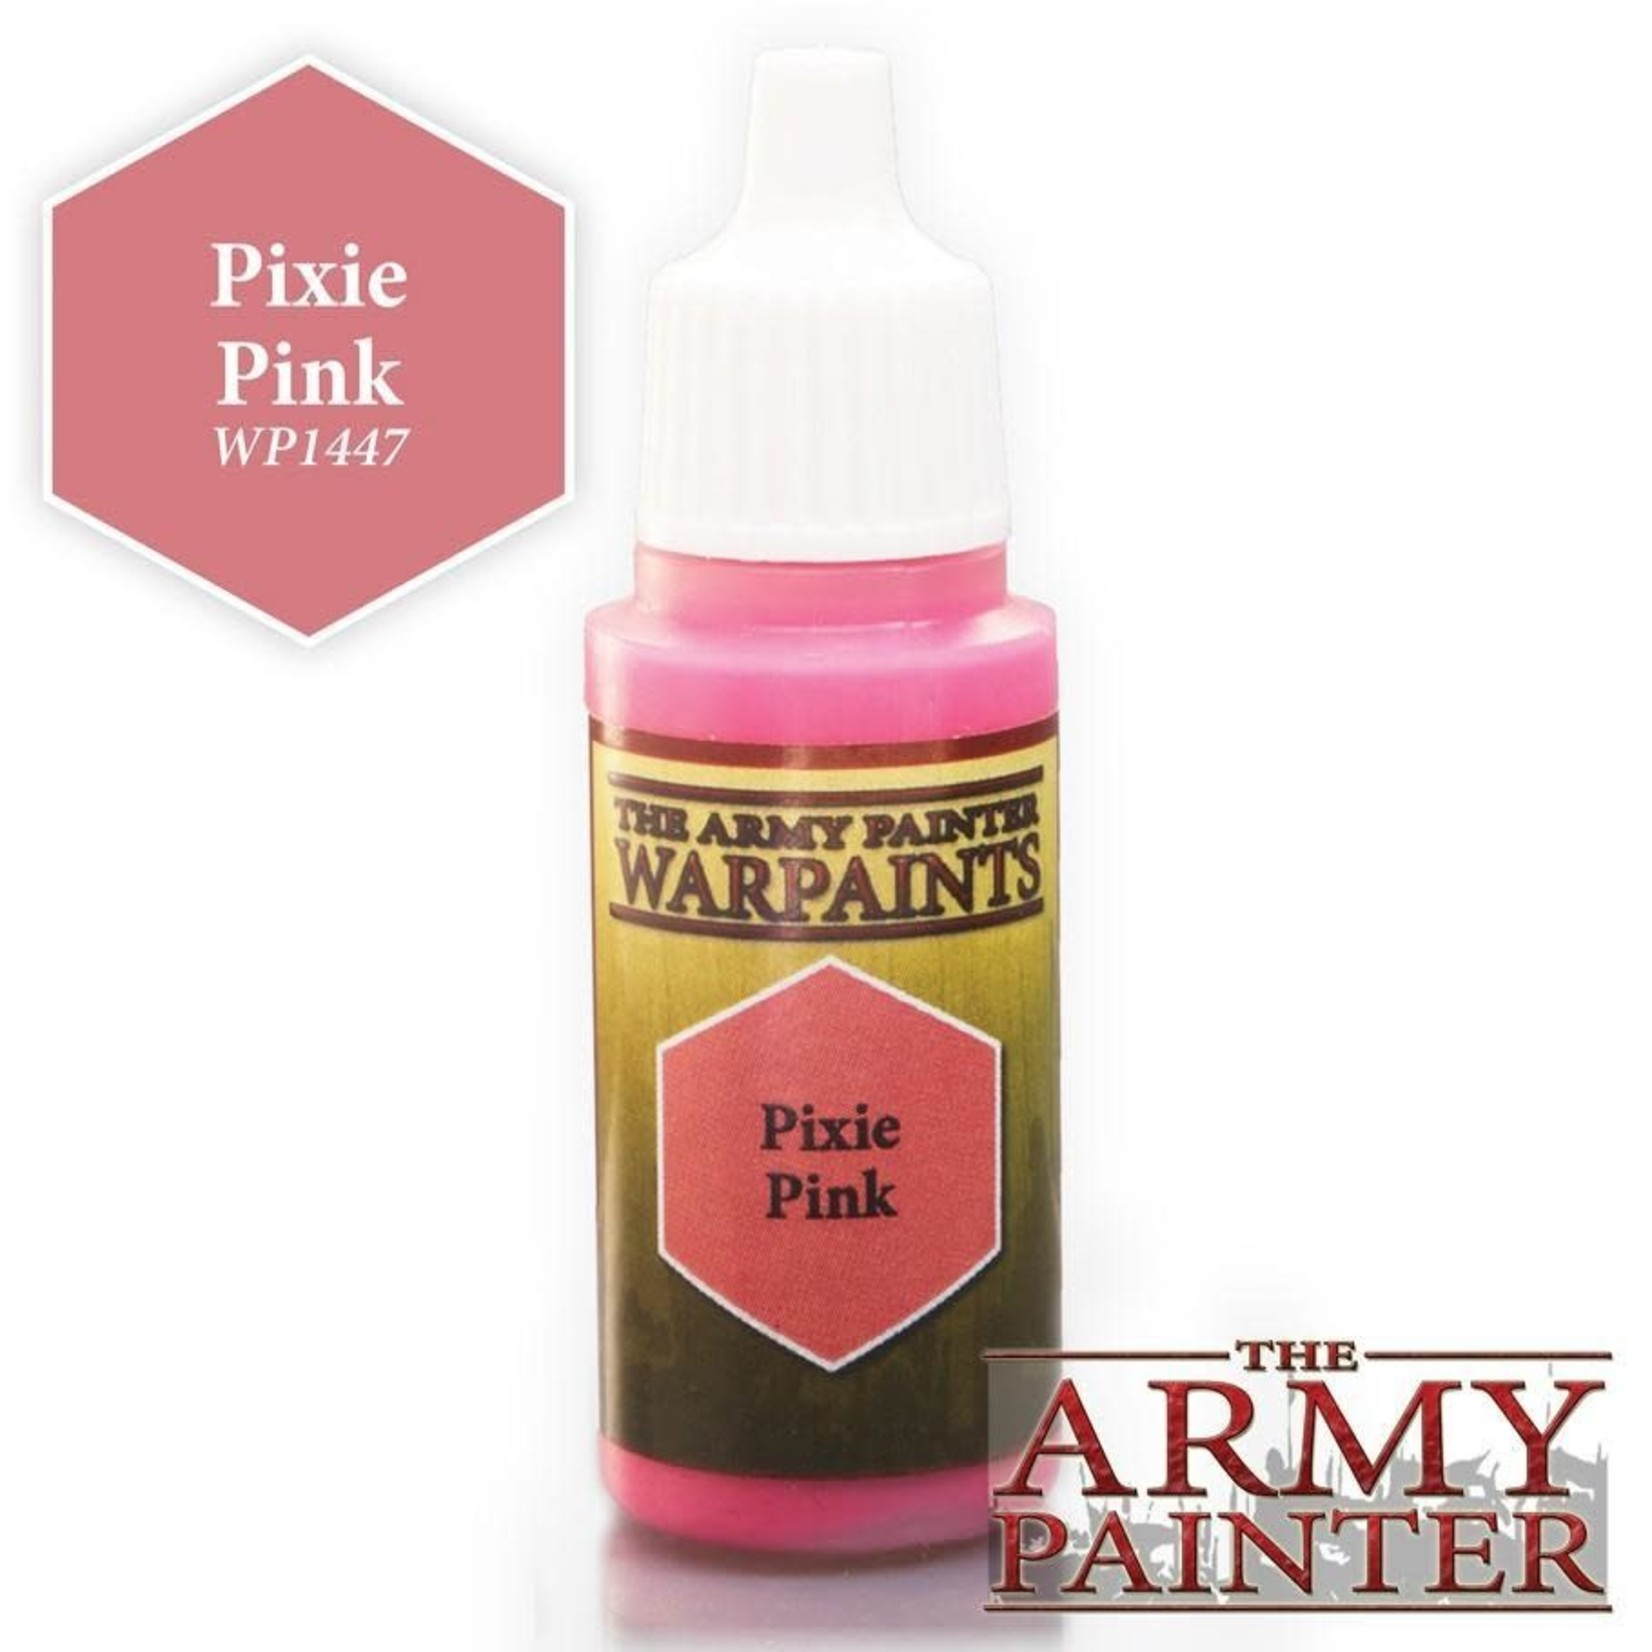 Army Painter Army Painter Warpaint Pixie Pink 18ml